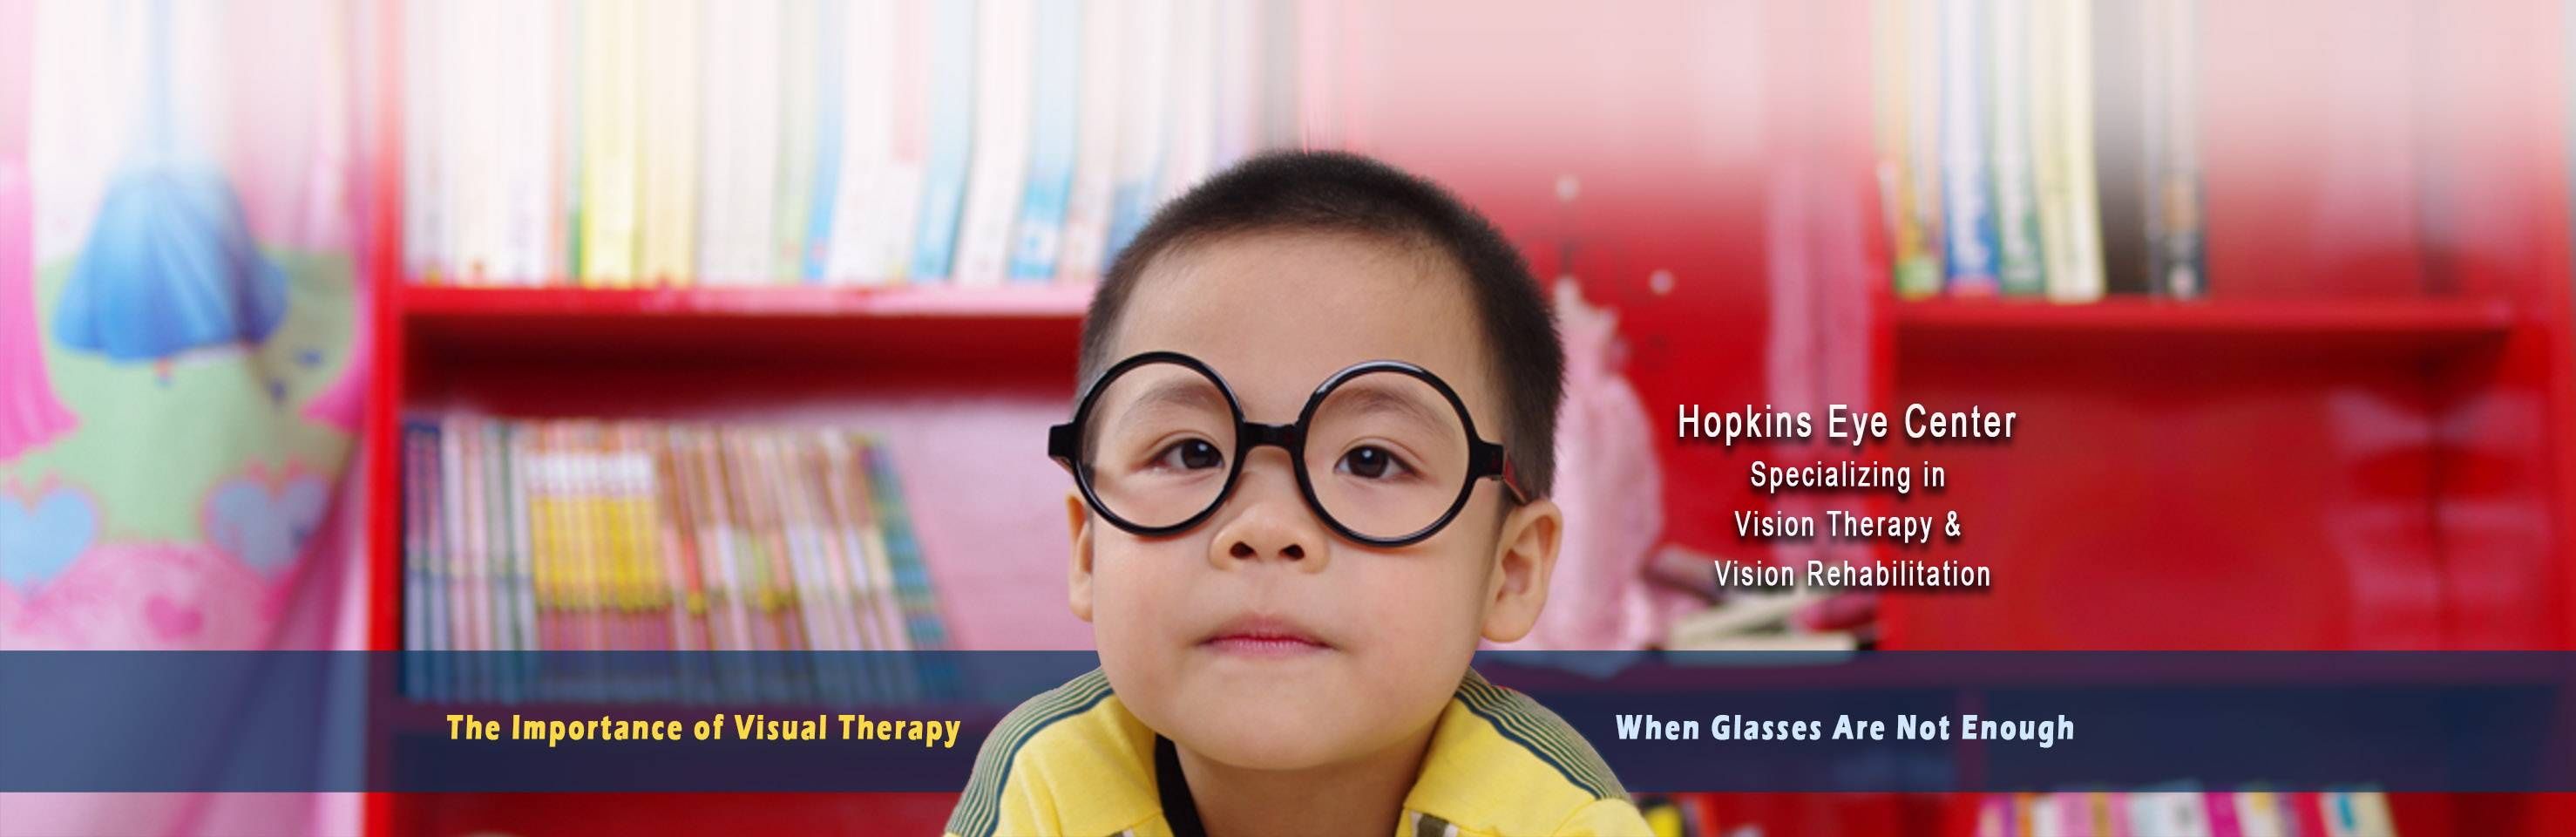 Boy with eyeglasses in Greenville, SC, and Vision Therapy facts